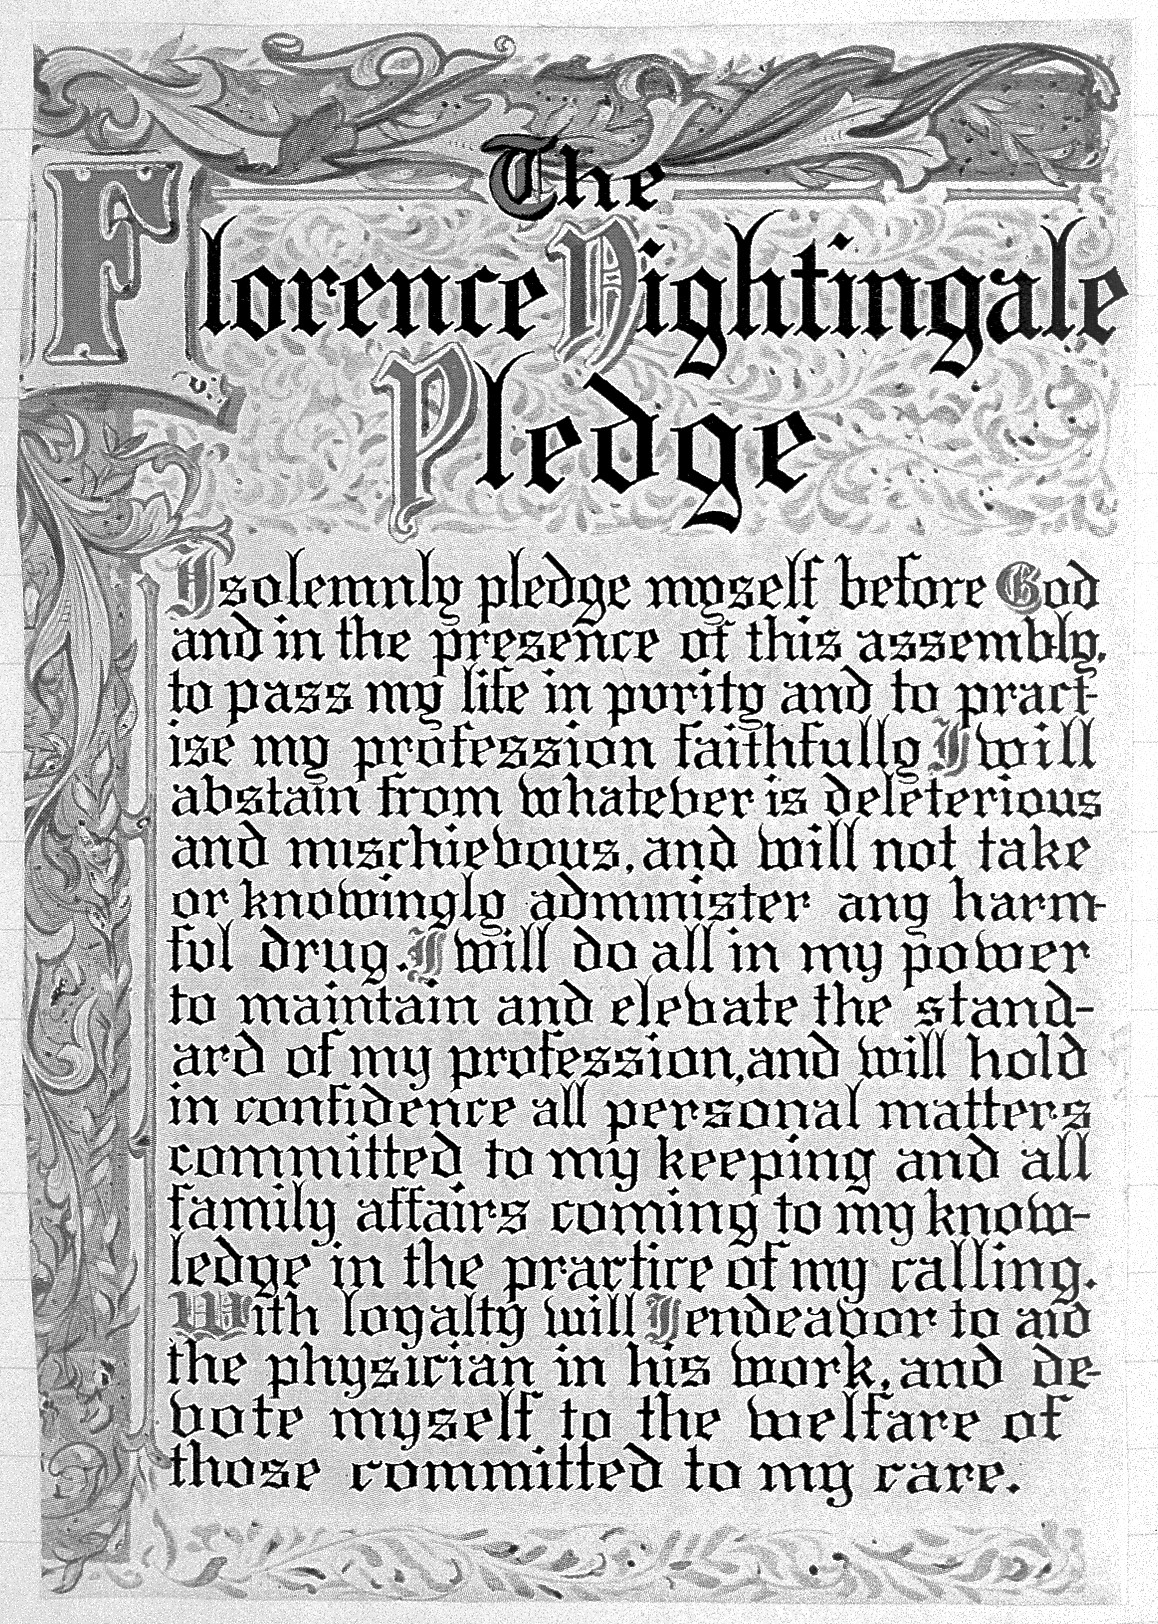 picture relating to Ana Code of Ethics Printable titled Nightingale Pledge - Wikipedia